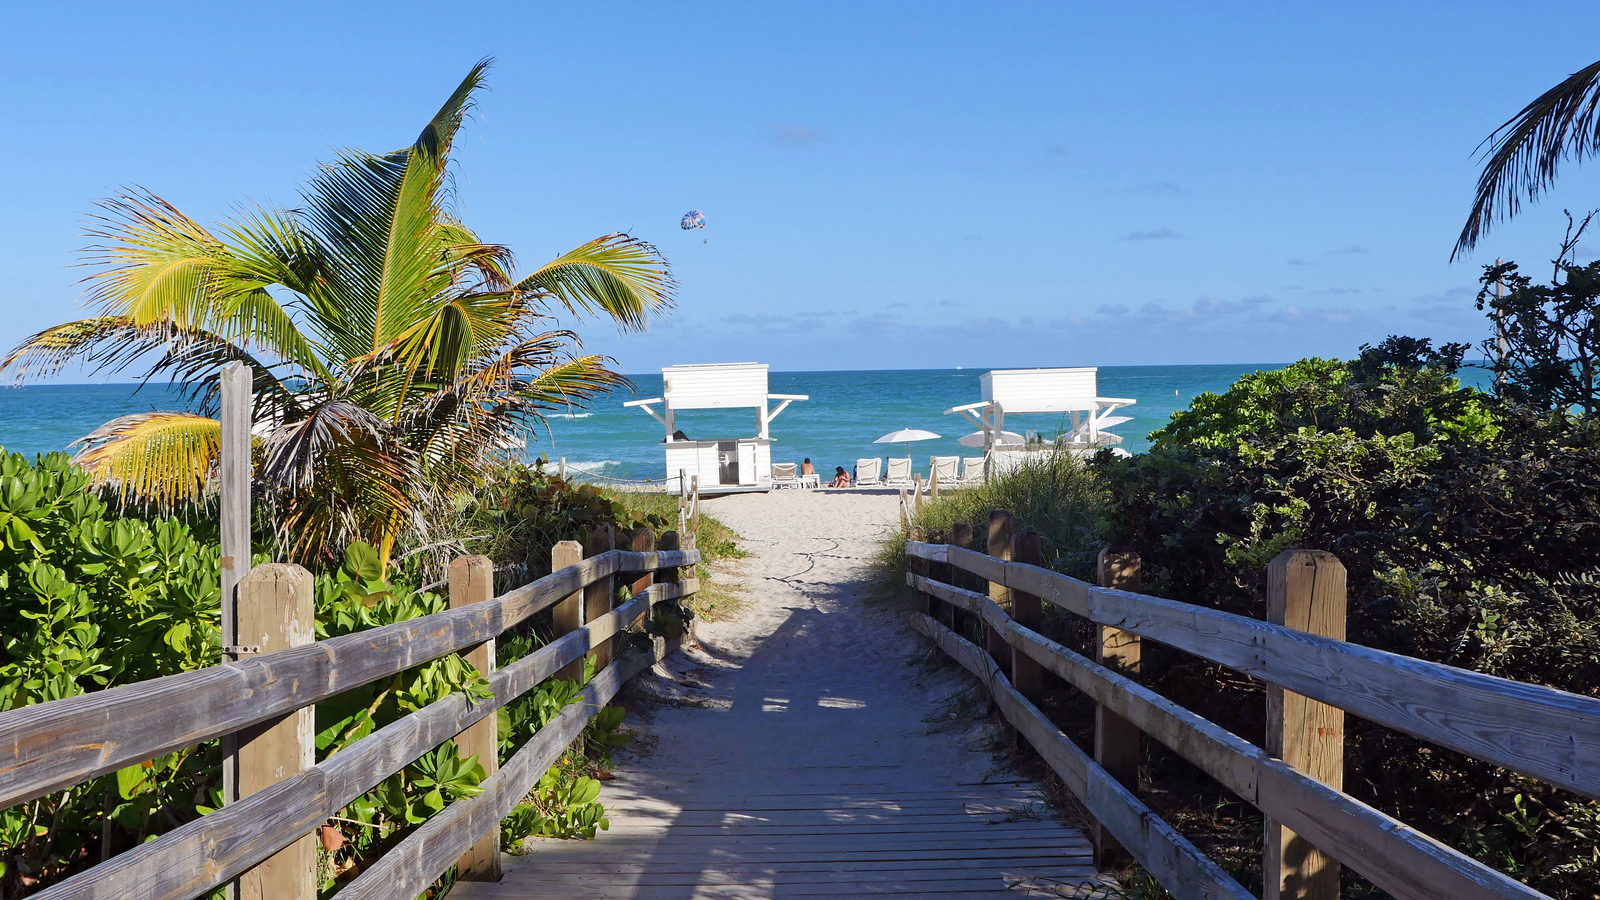 Miami Hotel Day Pass: Relax Before an Evening Flight